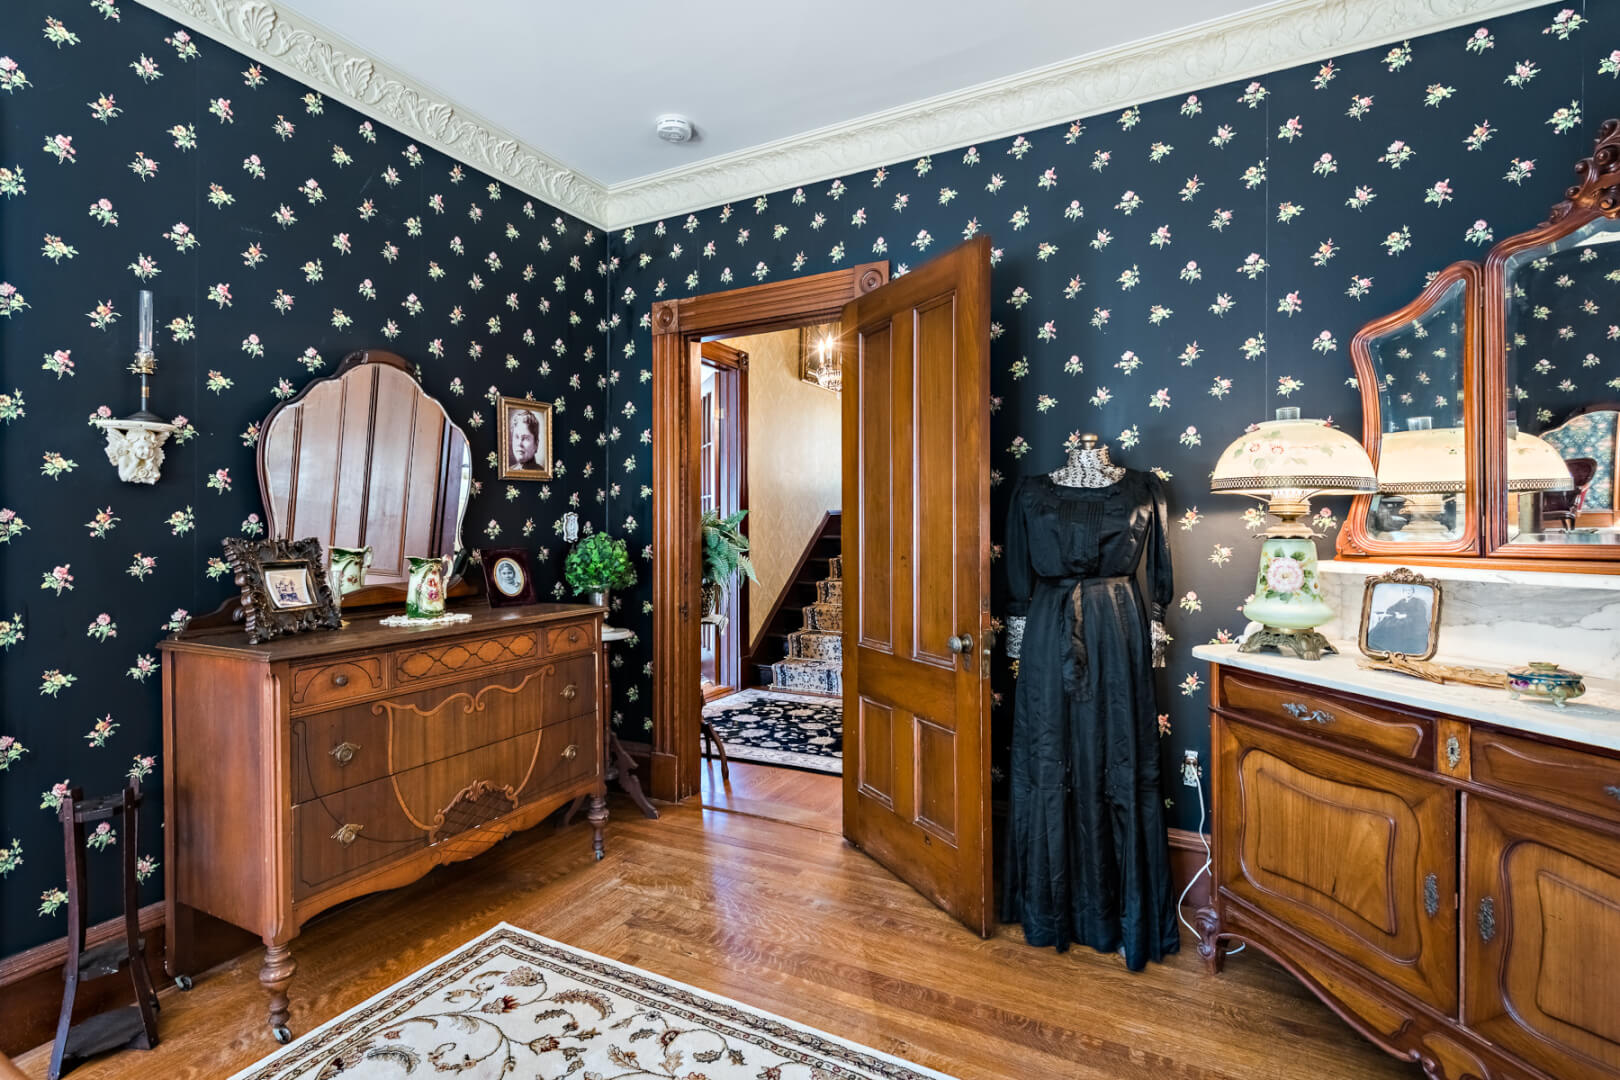 Lizzie borden 39 s maplecroft home for sale fully decorated for Fully decorated homes